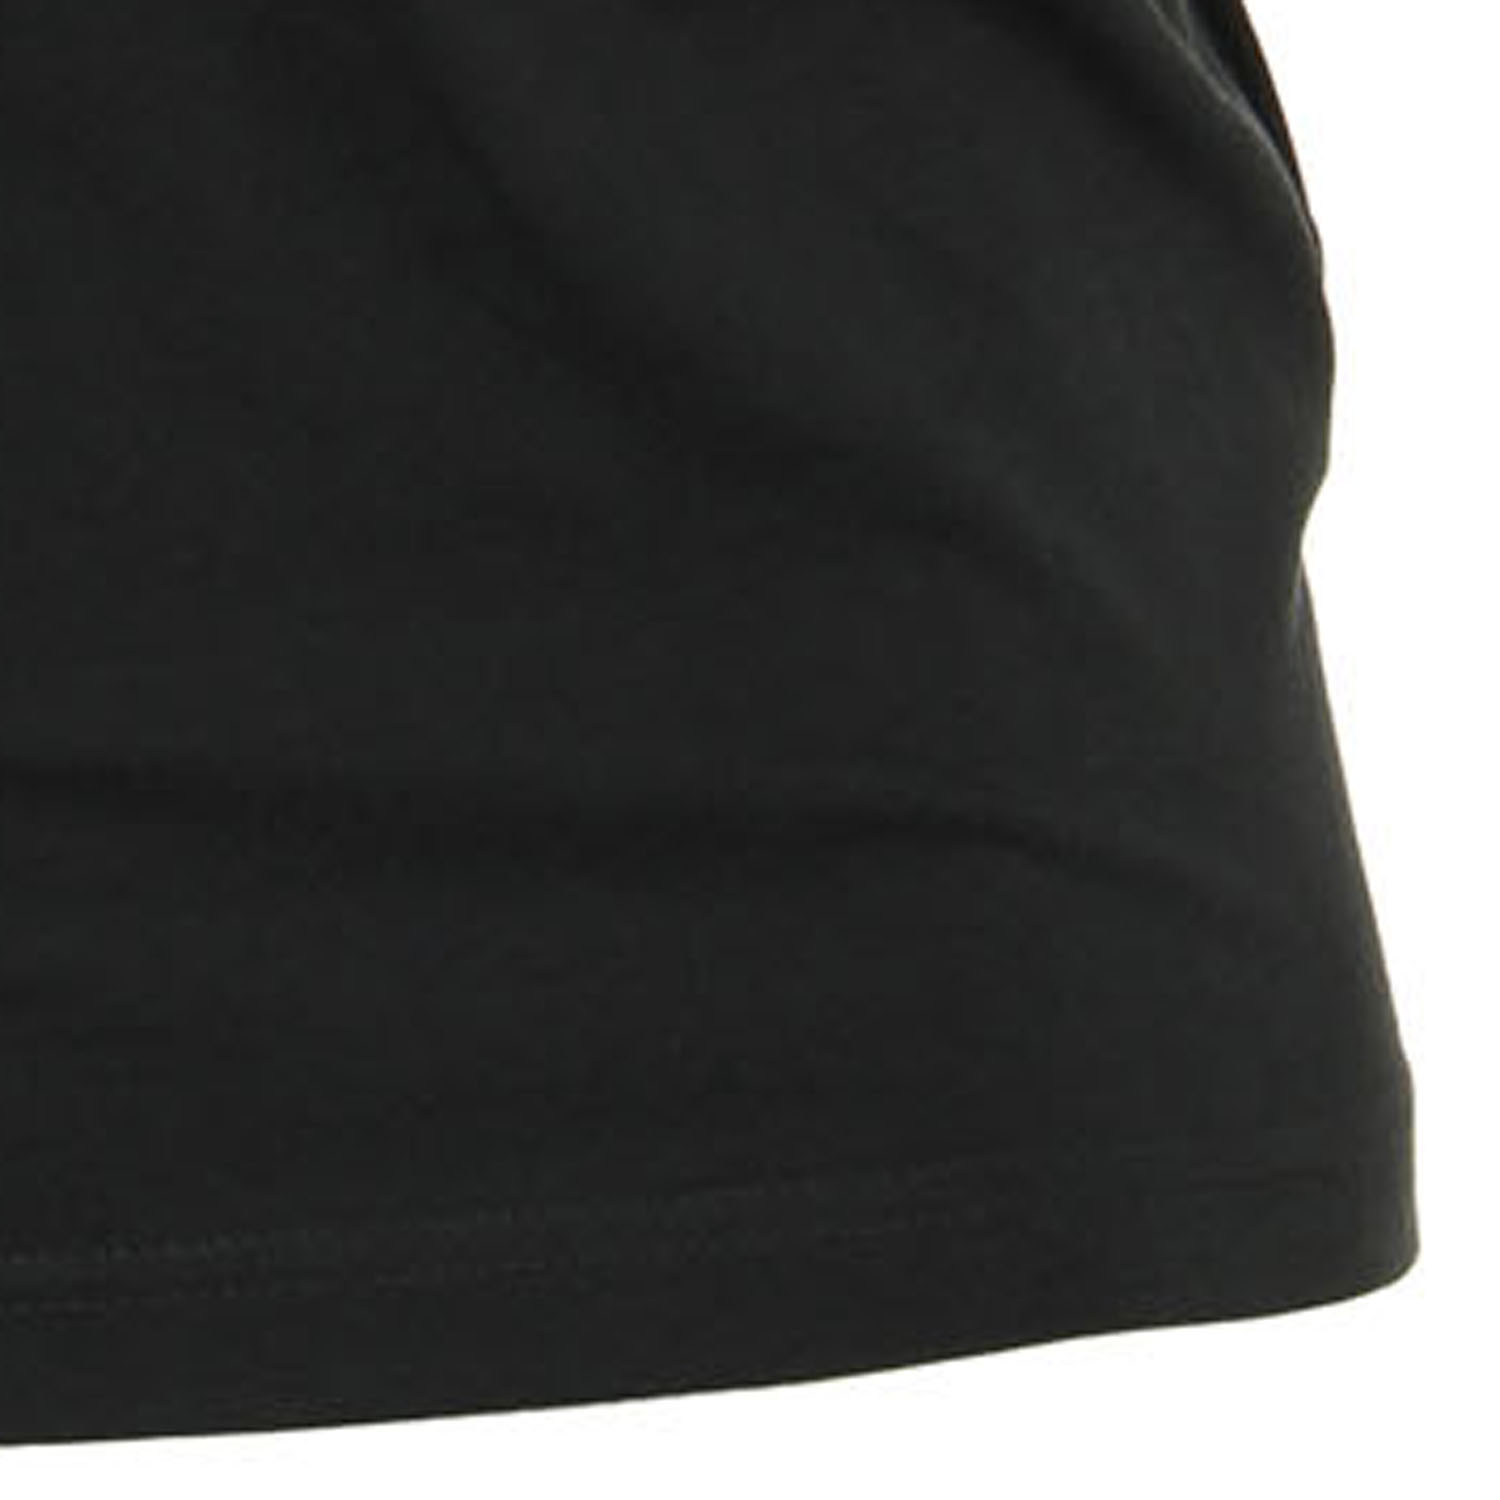 Detail Image to Basic T-shirt for men in dark grey by Casamoda in plus size up to 6XL